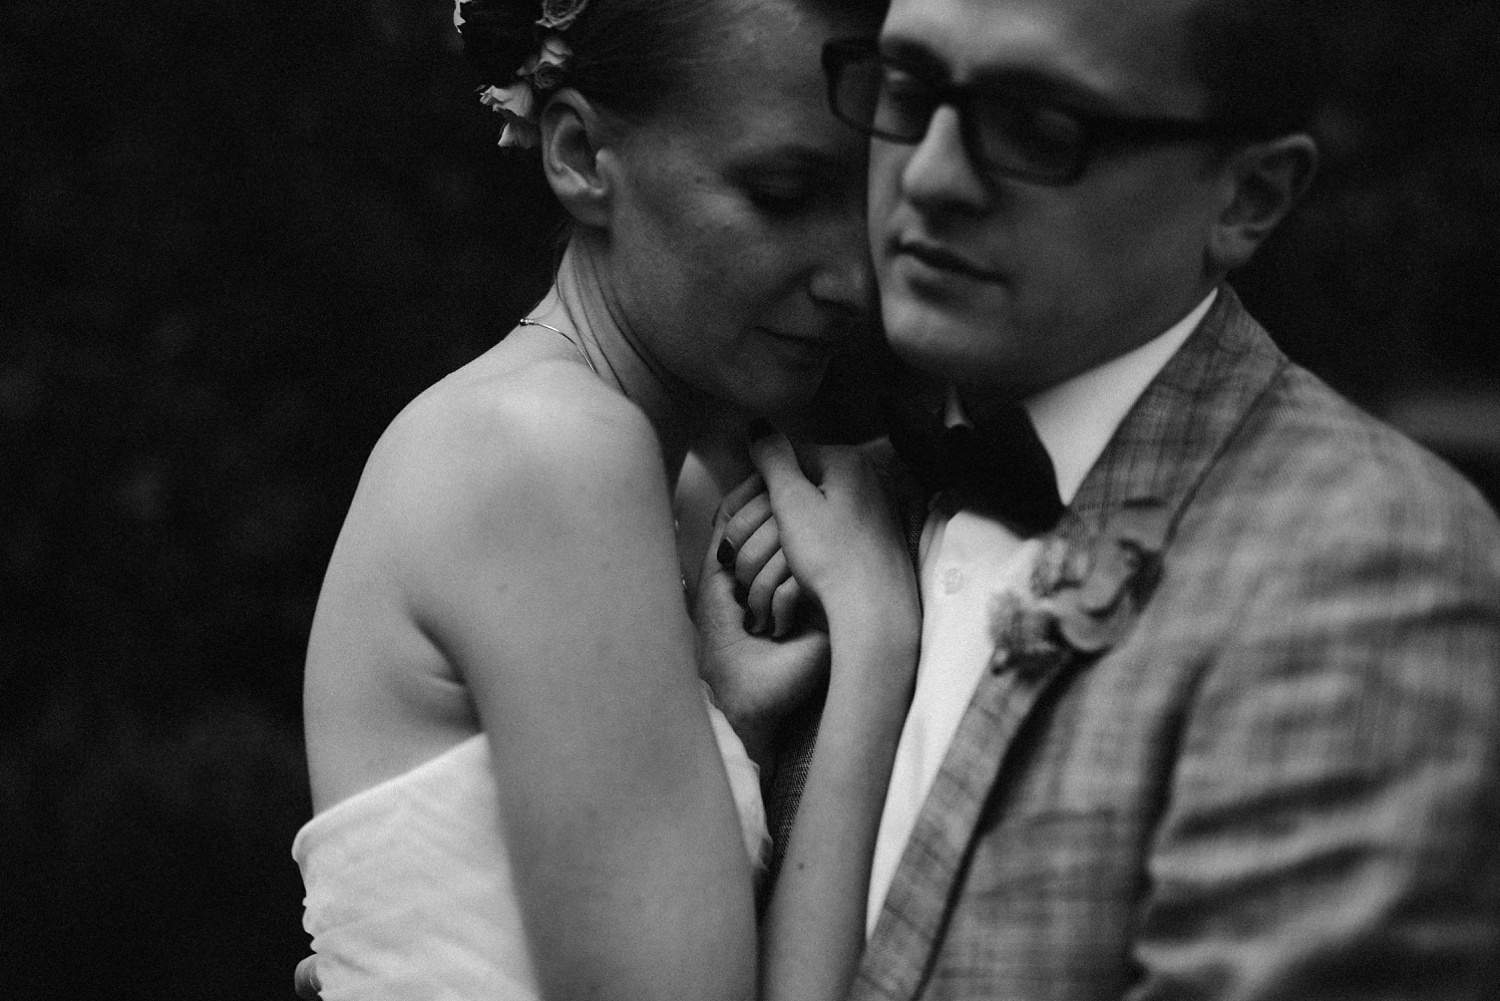 Wedding photographer Belgium Ardennes - Olle and Gosia_0045.jpg